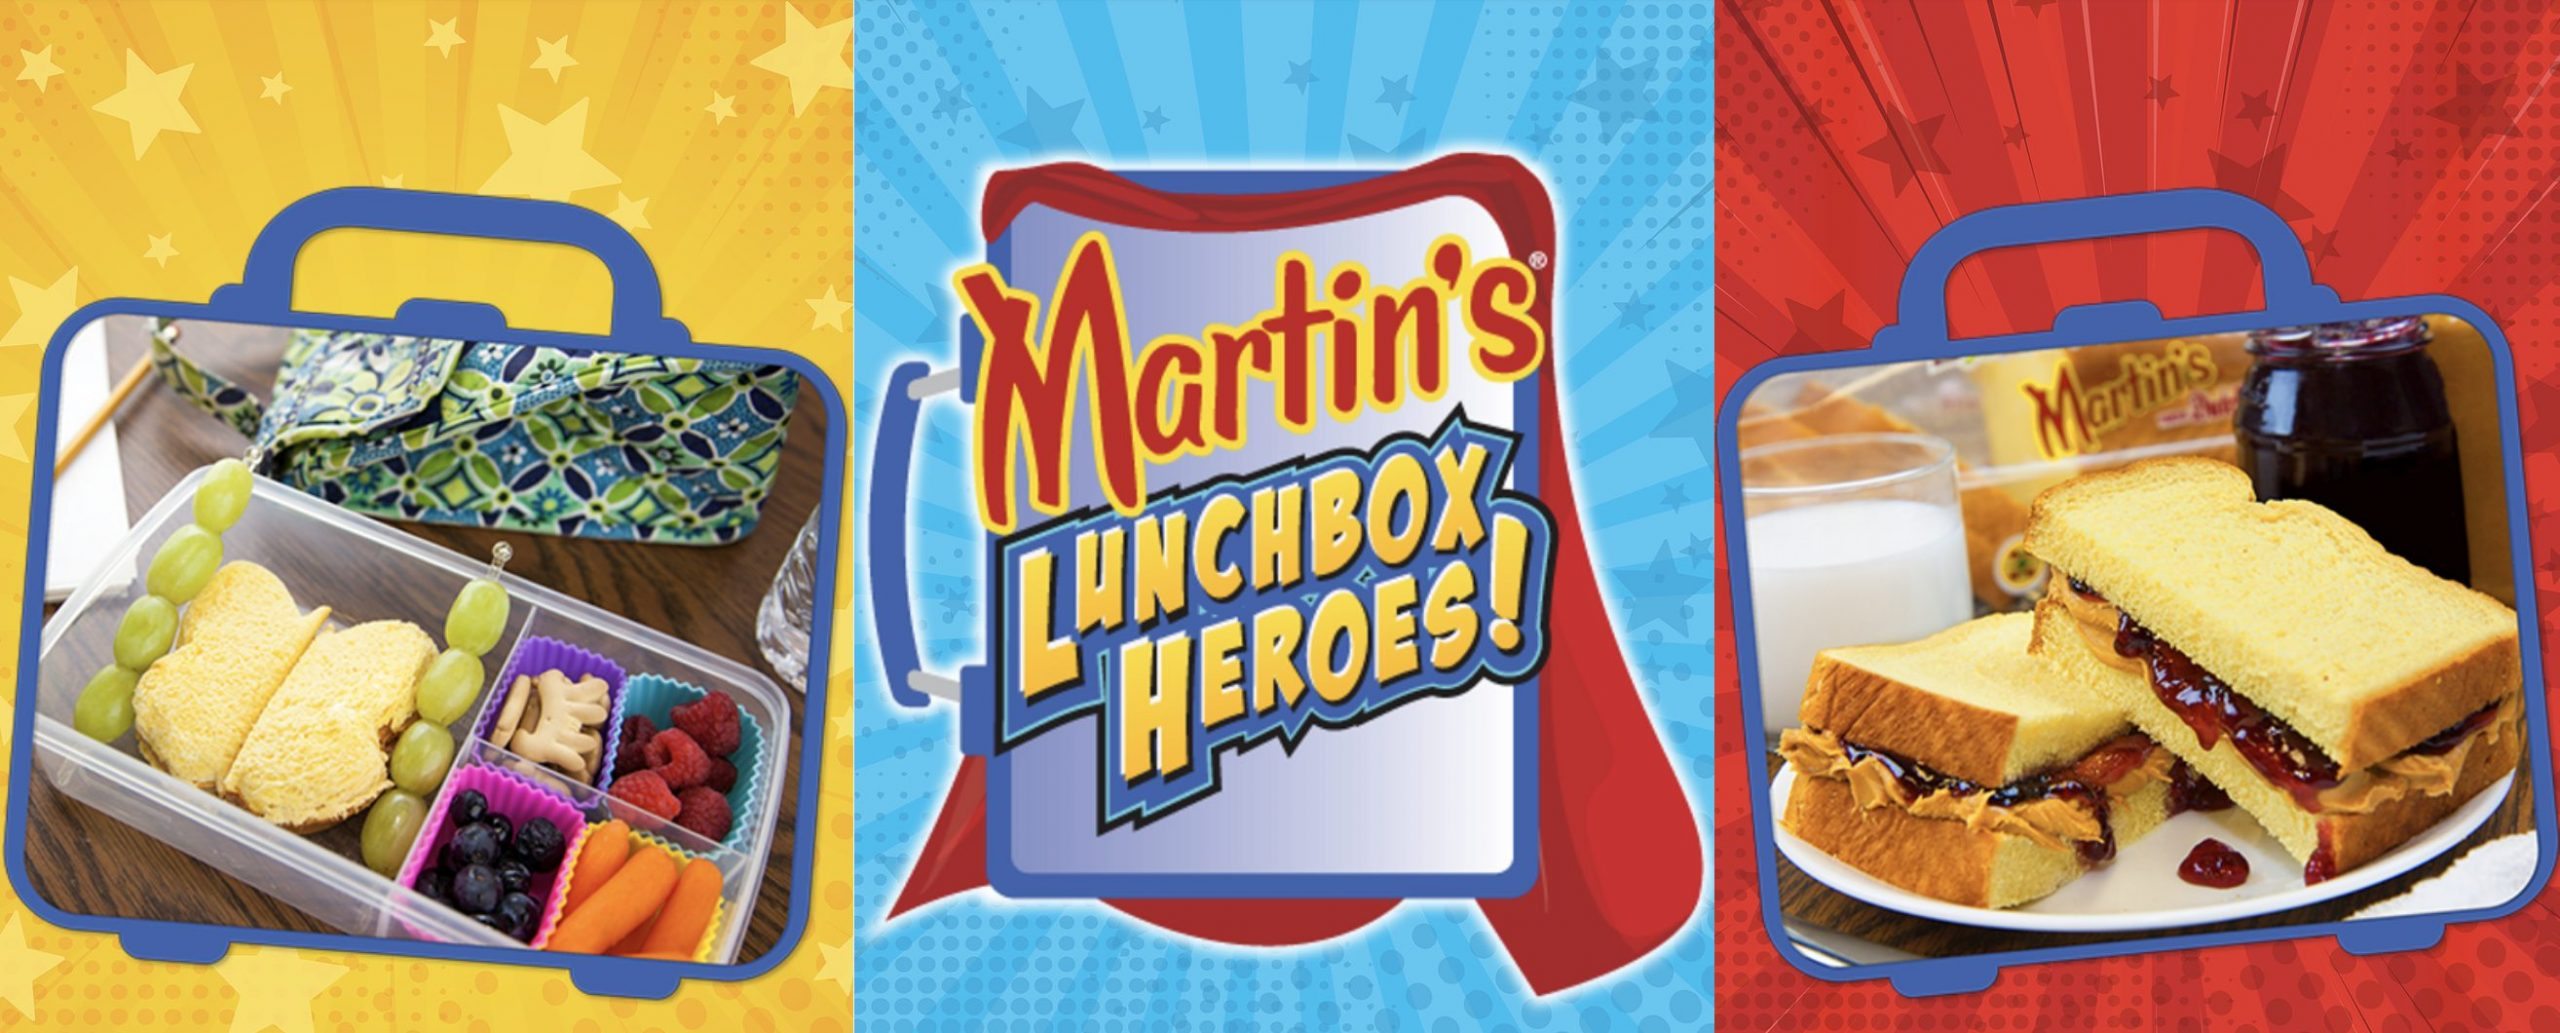 Martin's Lunchbox Heroes charity campaign supports Blessings in a Backpack